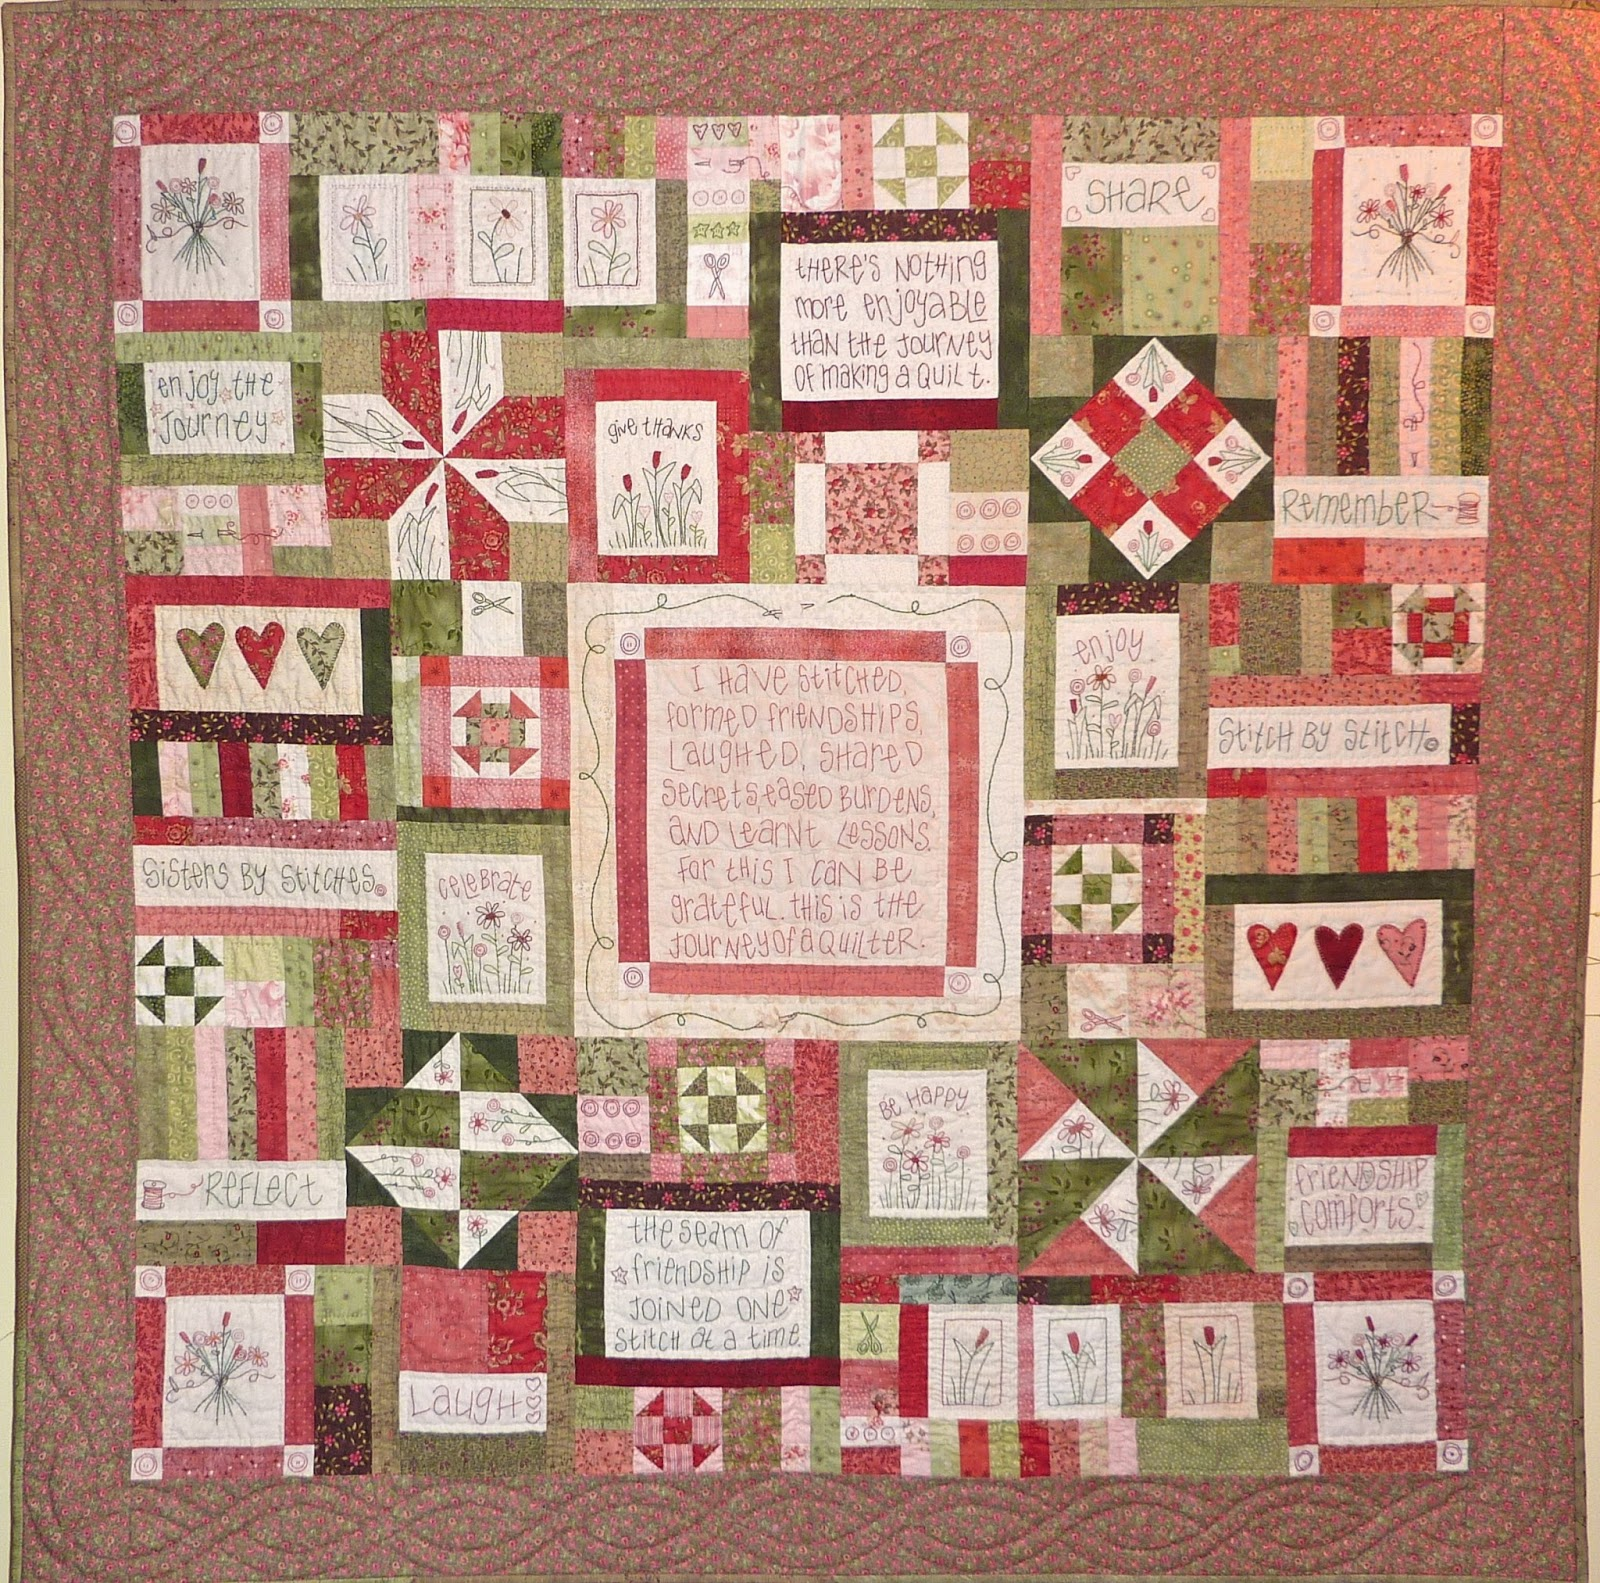 Kathy's Quilts: Slow Sunday Stitching : kathy quilts - Adamdwight.com